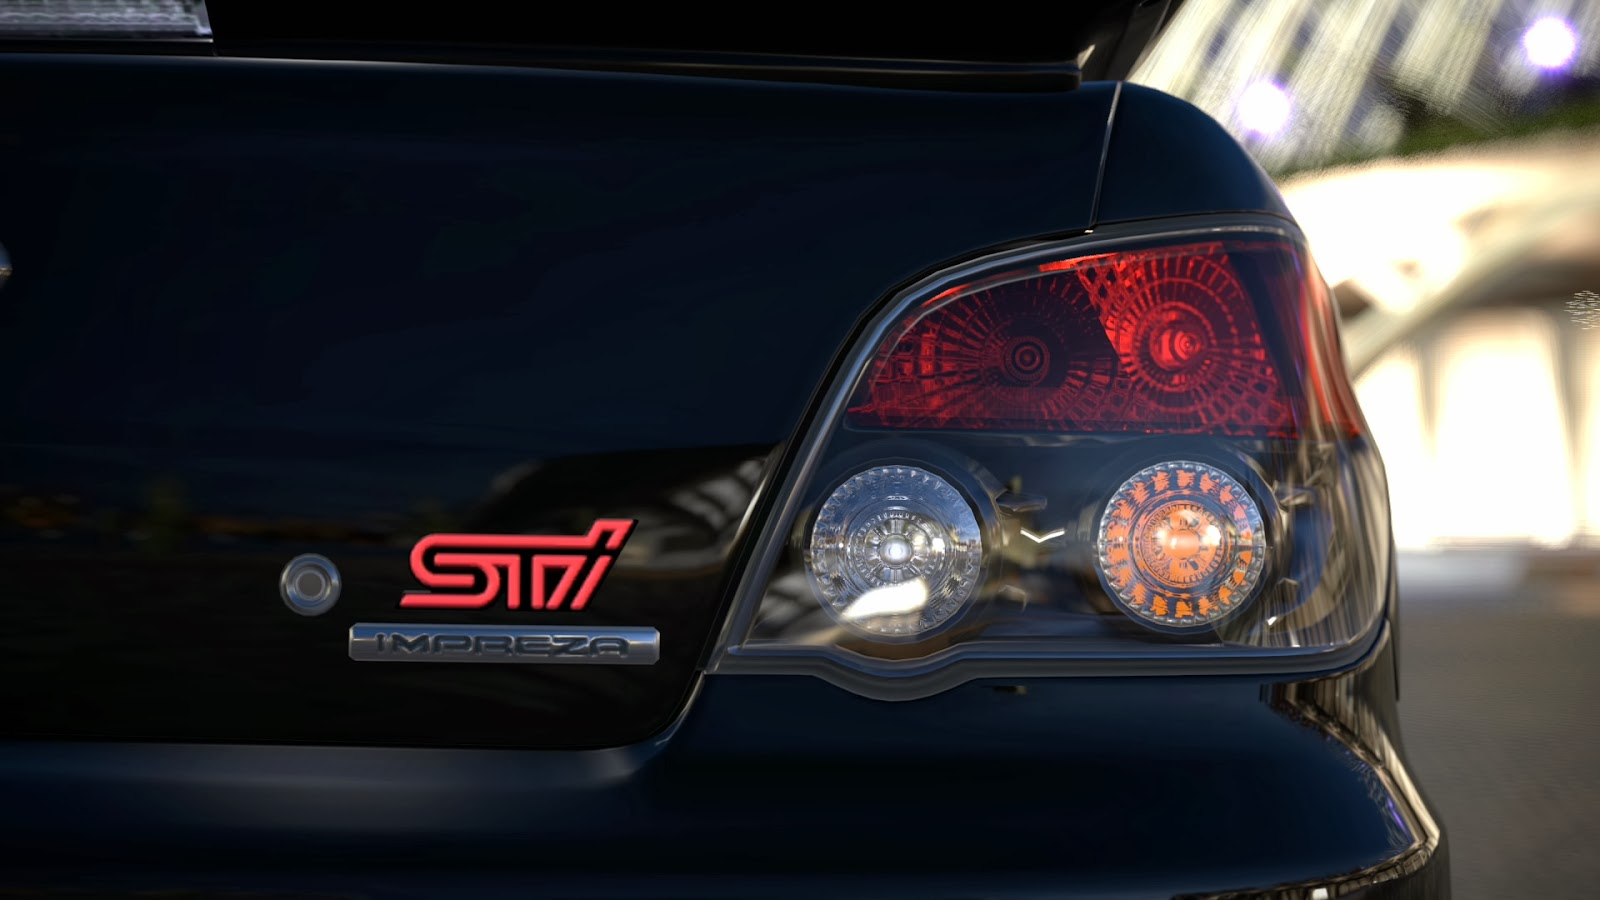 Tail Lights And The Red Sti Badge Plus Impreza Label